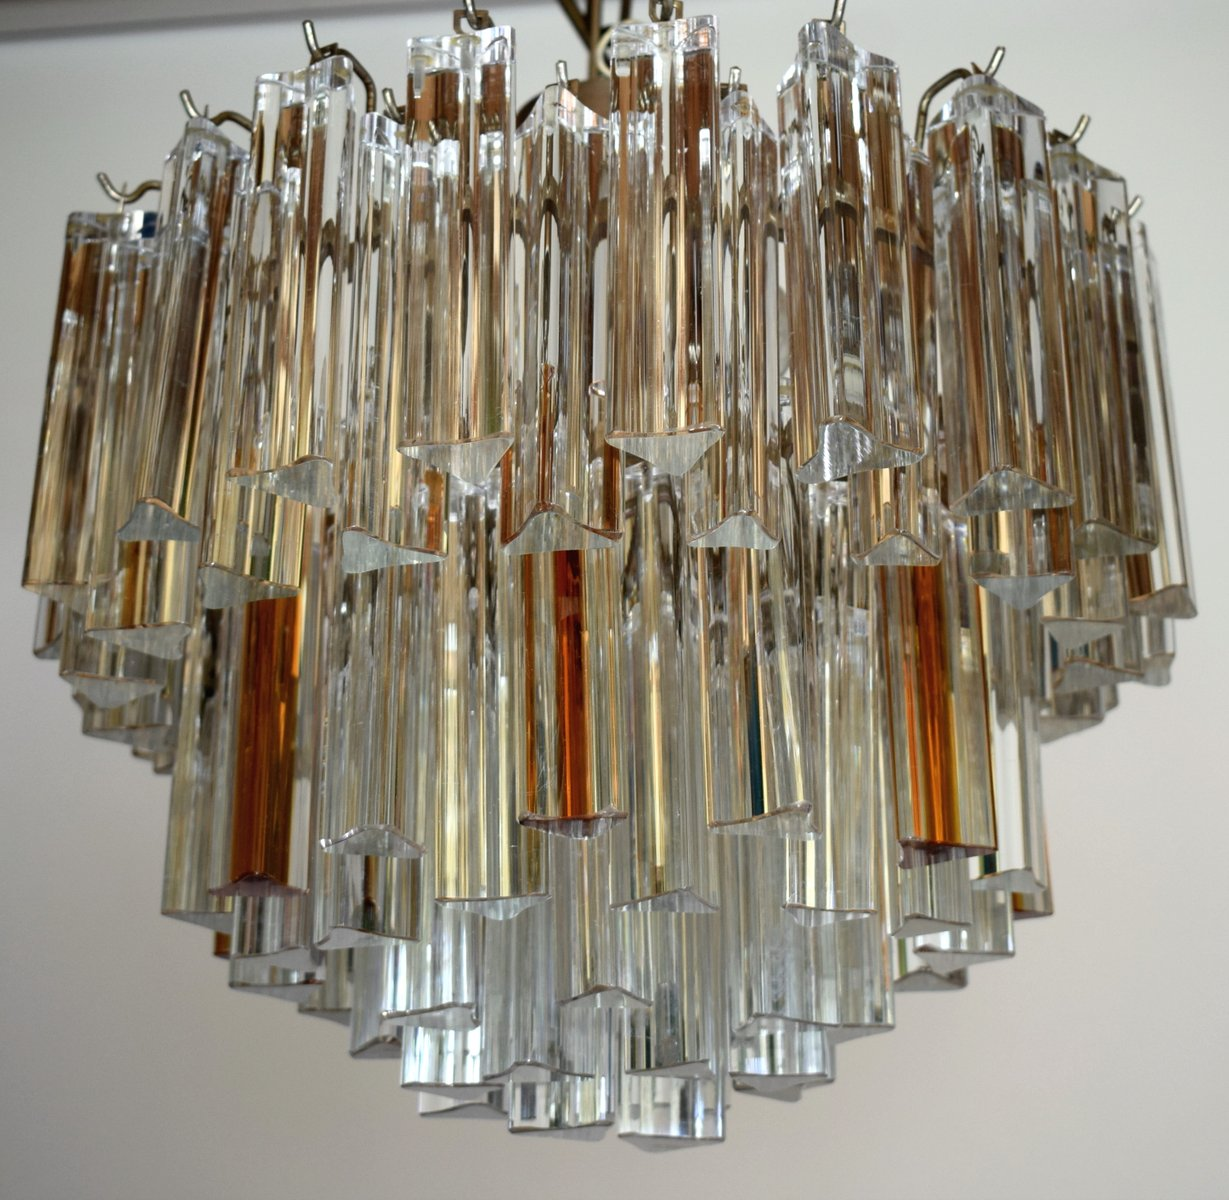 Mid century modern chandelier with clear and amber glass for sale at mid century modern chandelier with clear and amber glass aloadofball Images